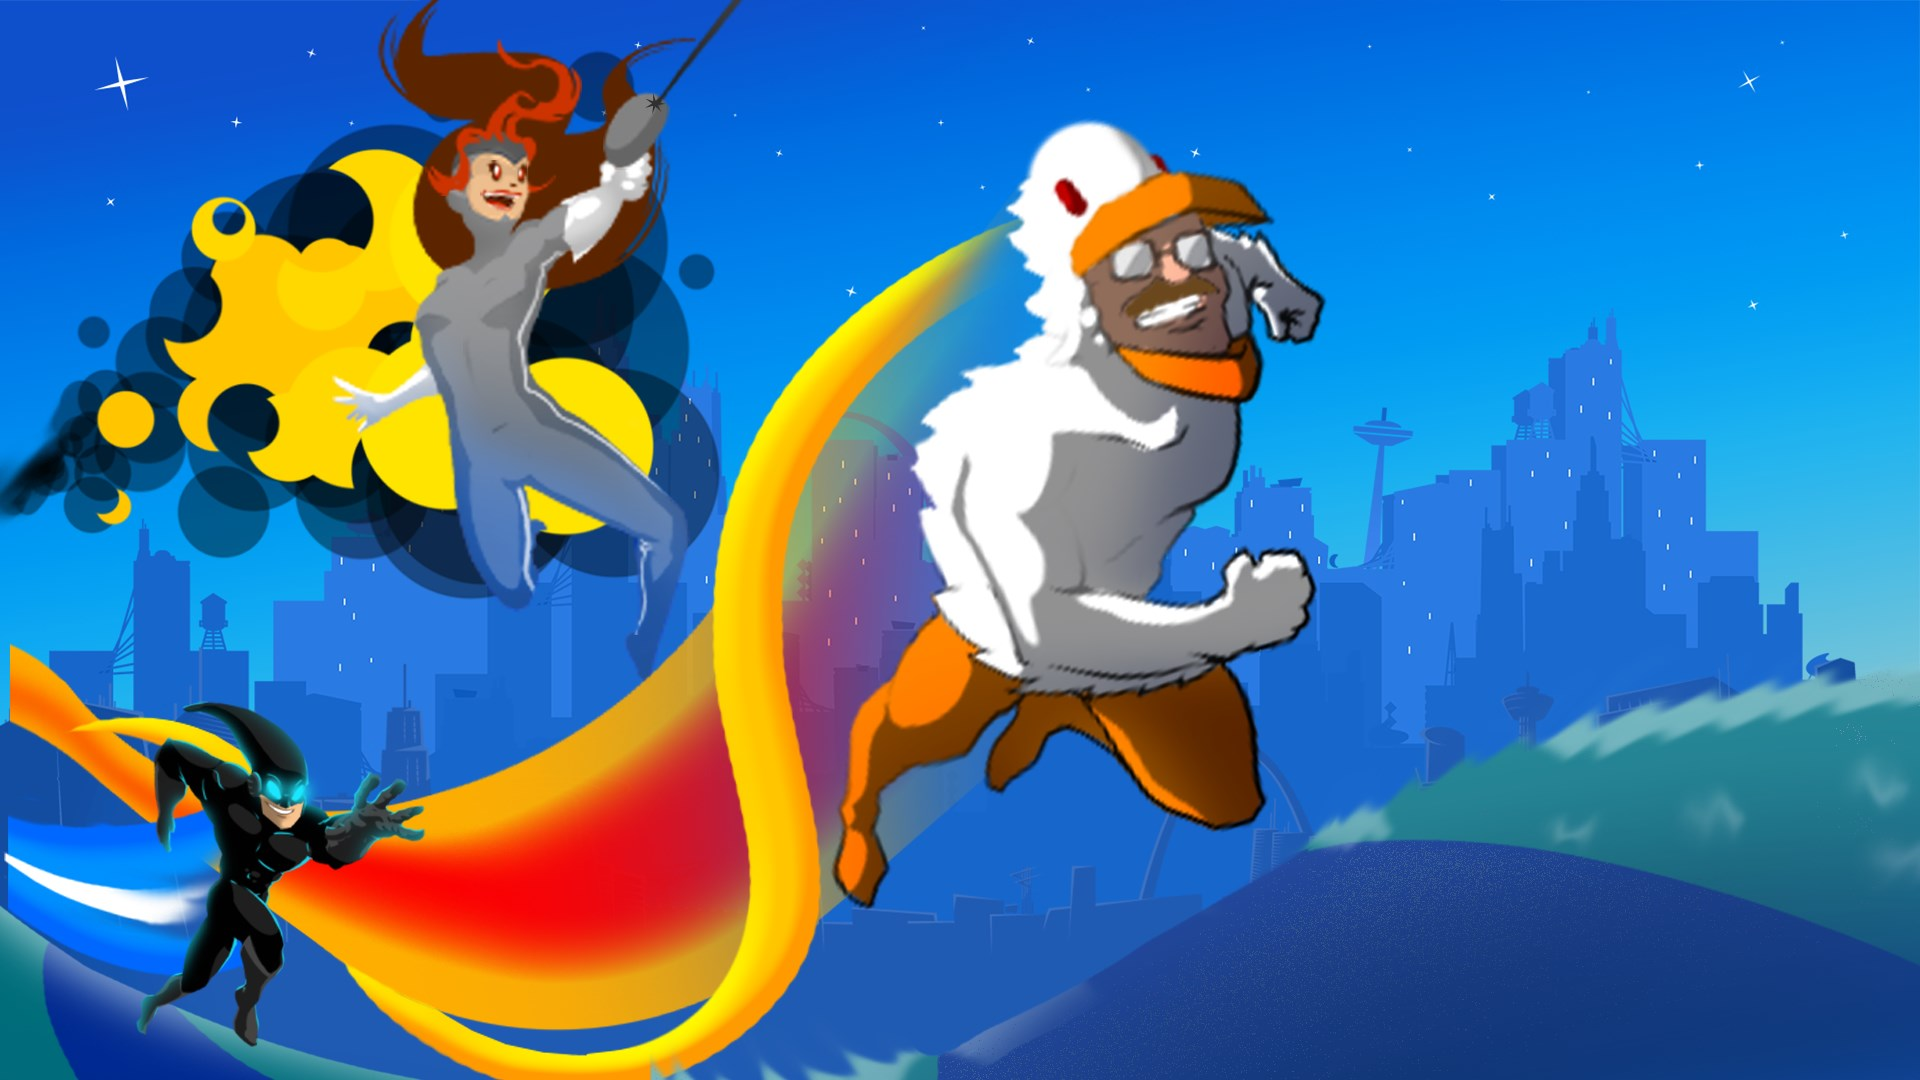 SpeedRunners Is Getting A Switch Port, Now You Can Take Fast Paced Super Hero Action On The Go